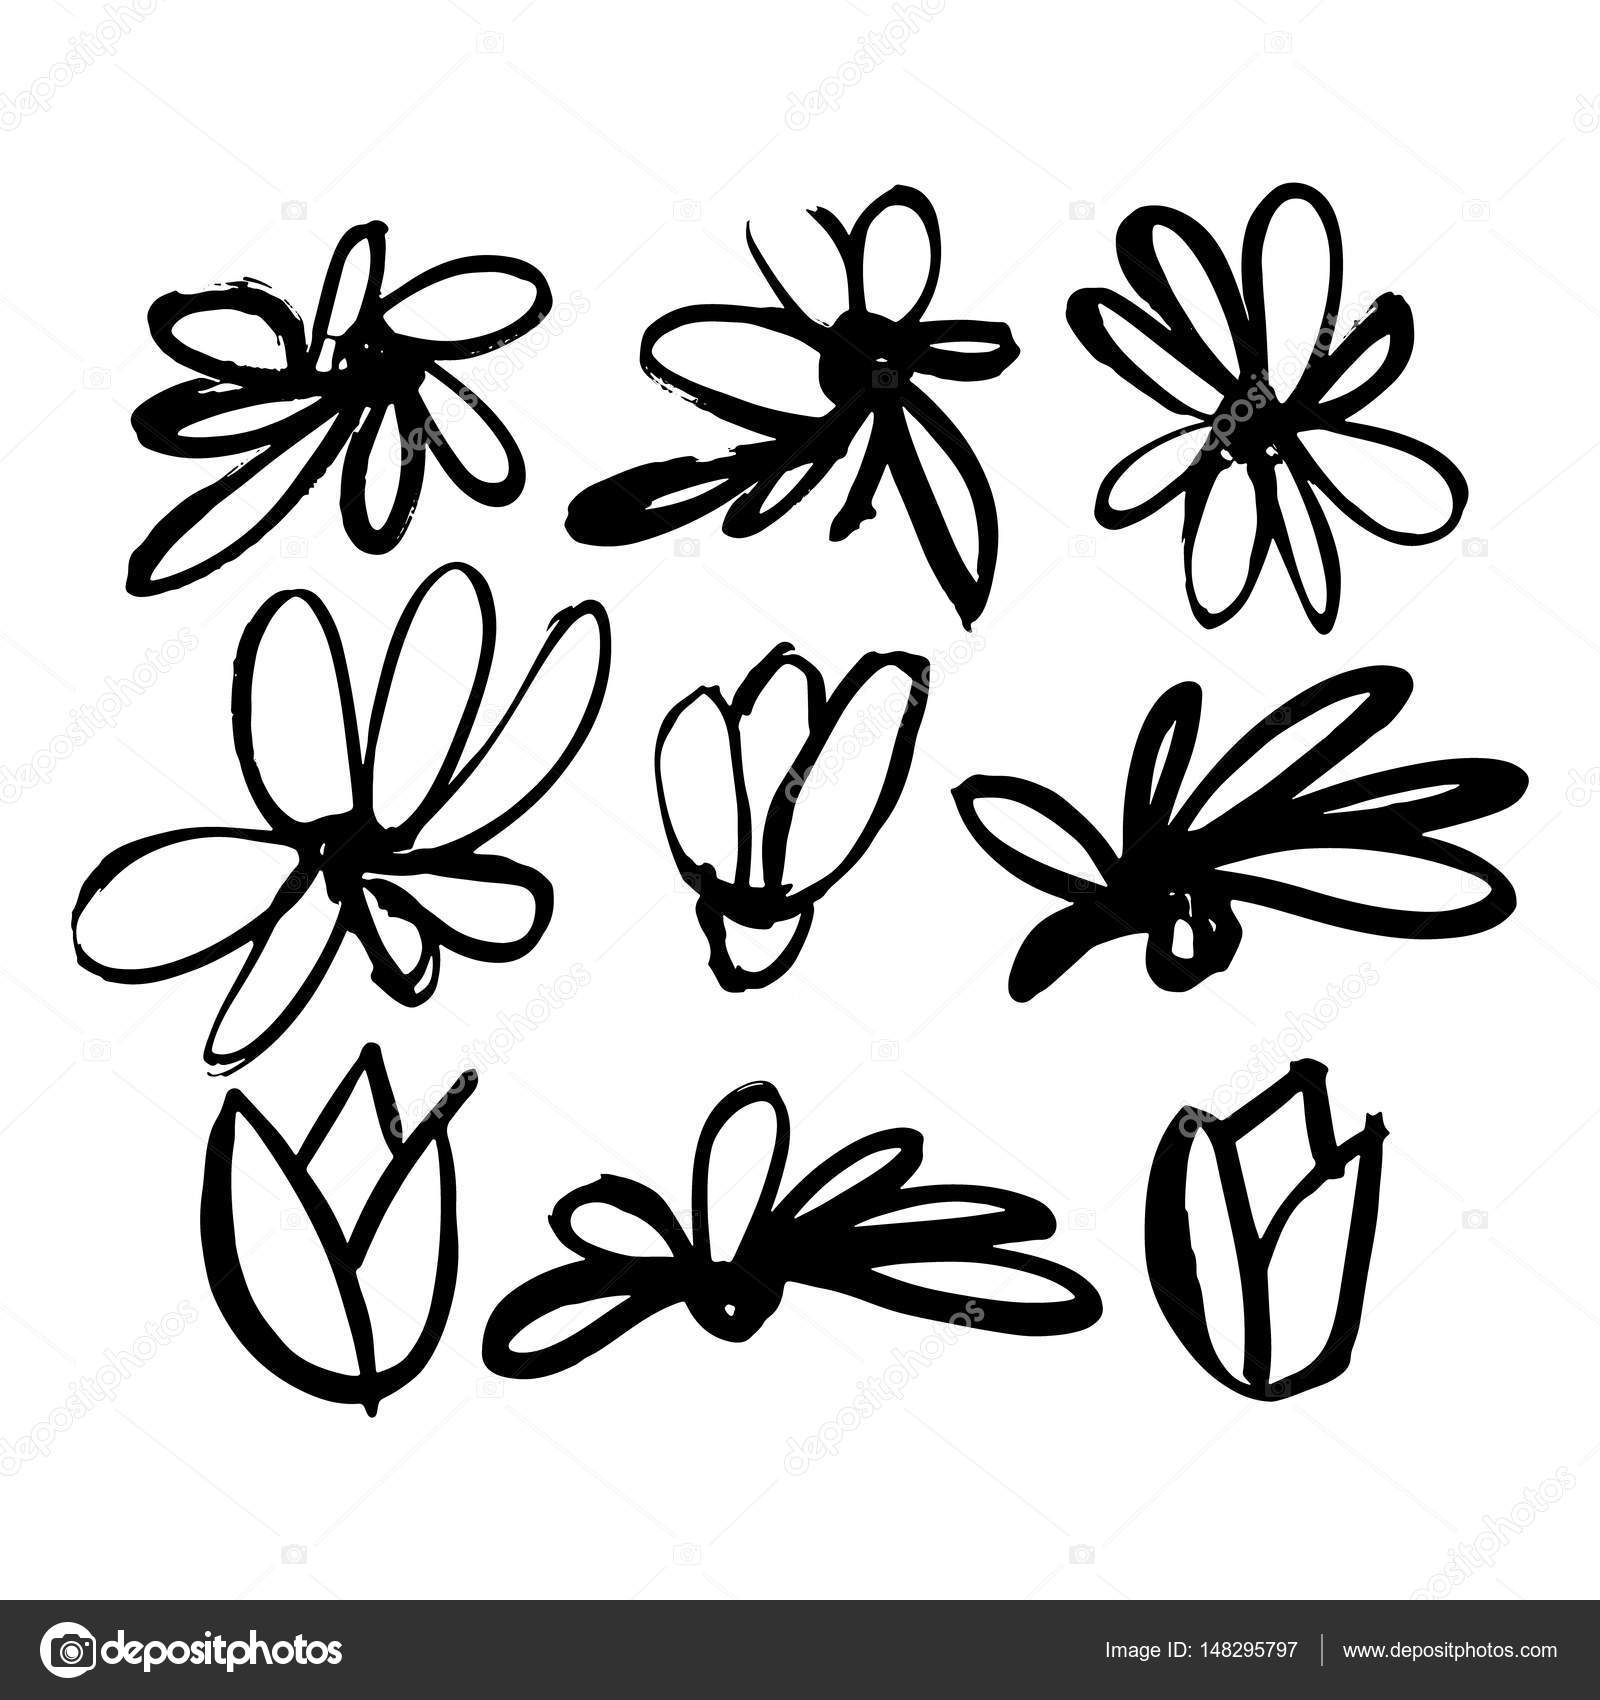 1600x1700 Hand Drawn Sketch Set From Flowers And Leaves. Illustration